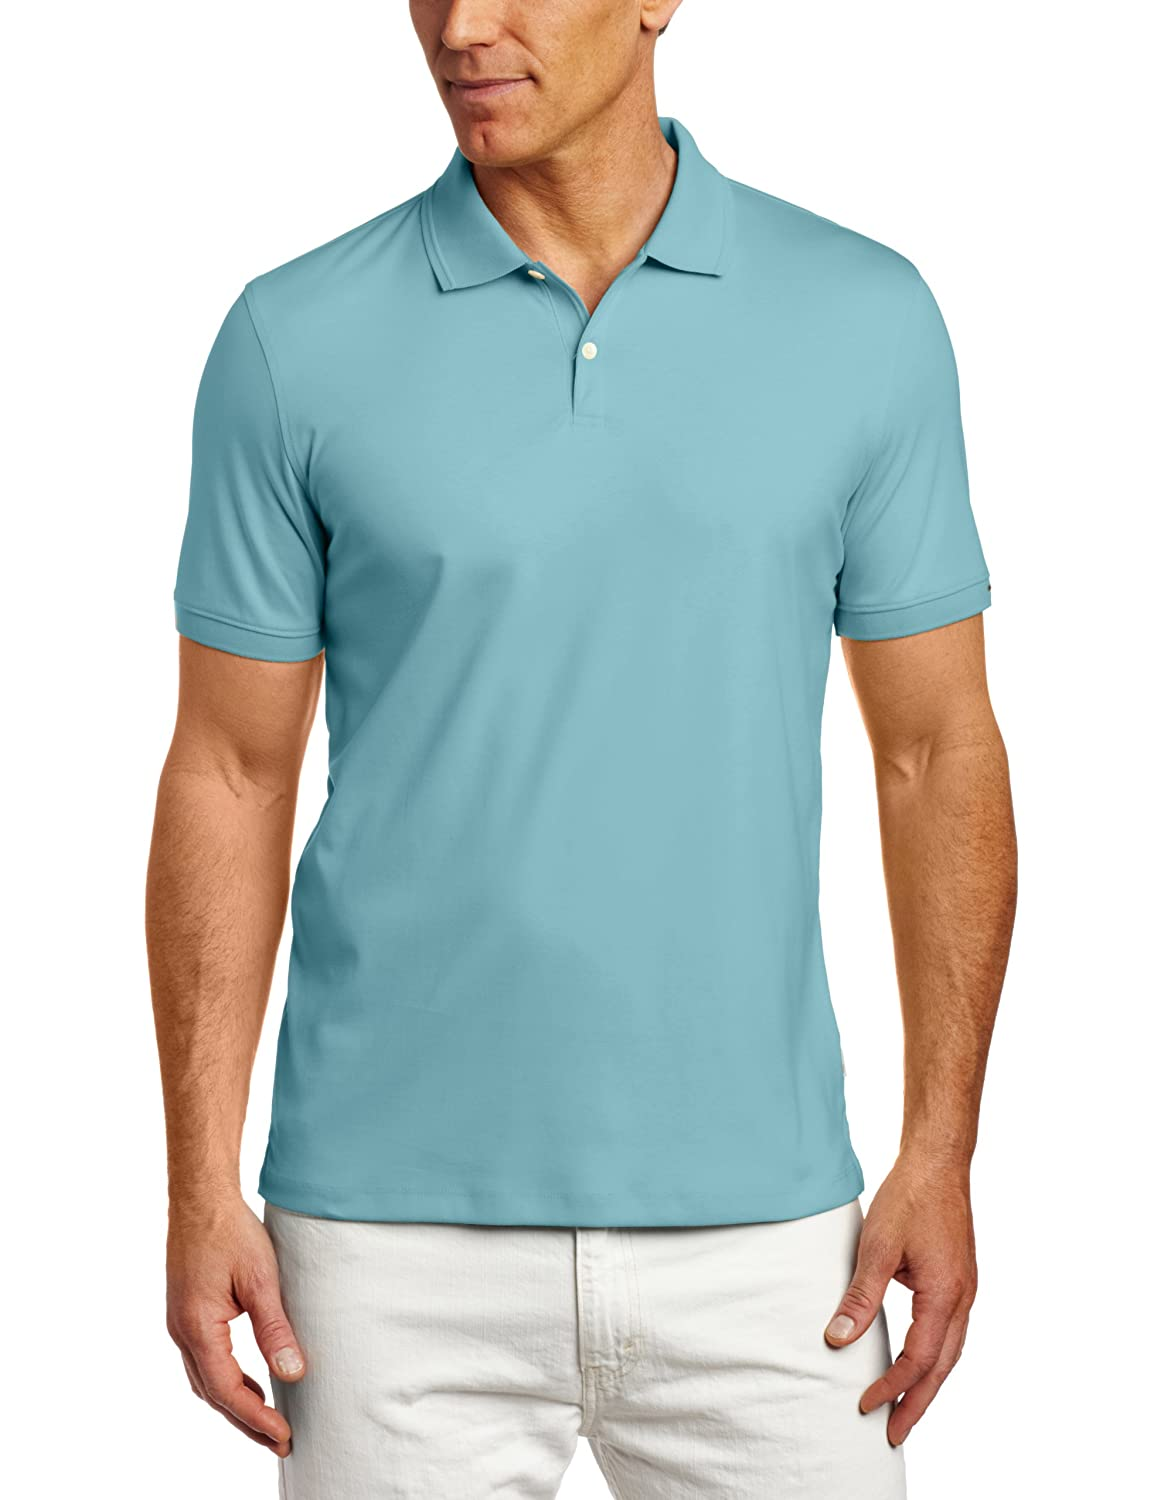 Calvin Klein Sportswear Men's Short Sleeve Solid Liquid Polo Shirt, Delphinium Blue, Medium